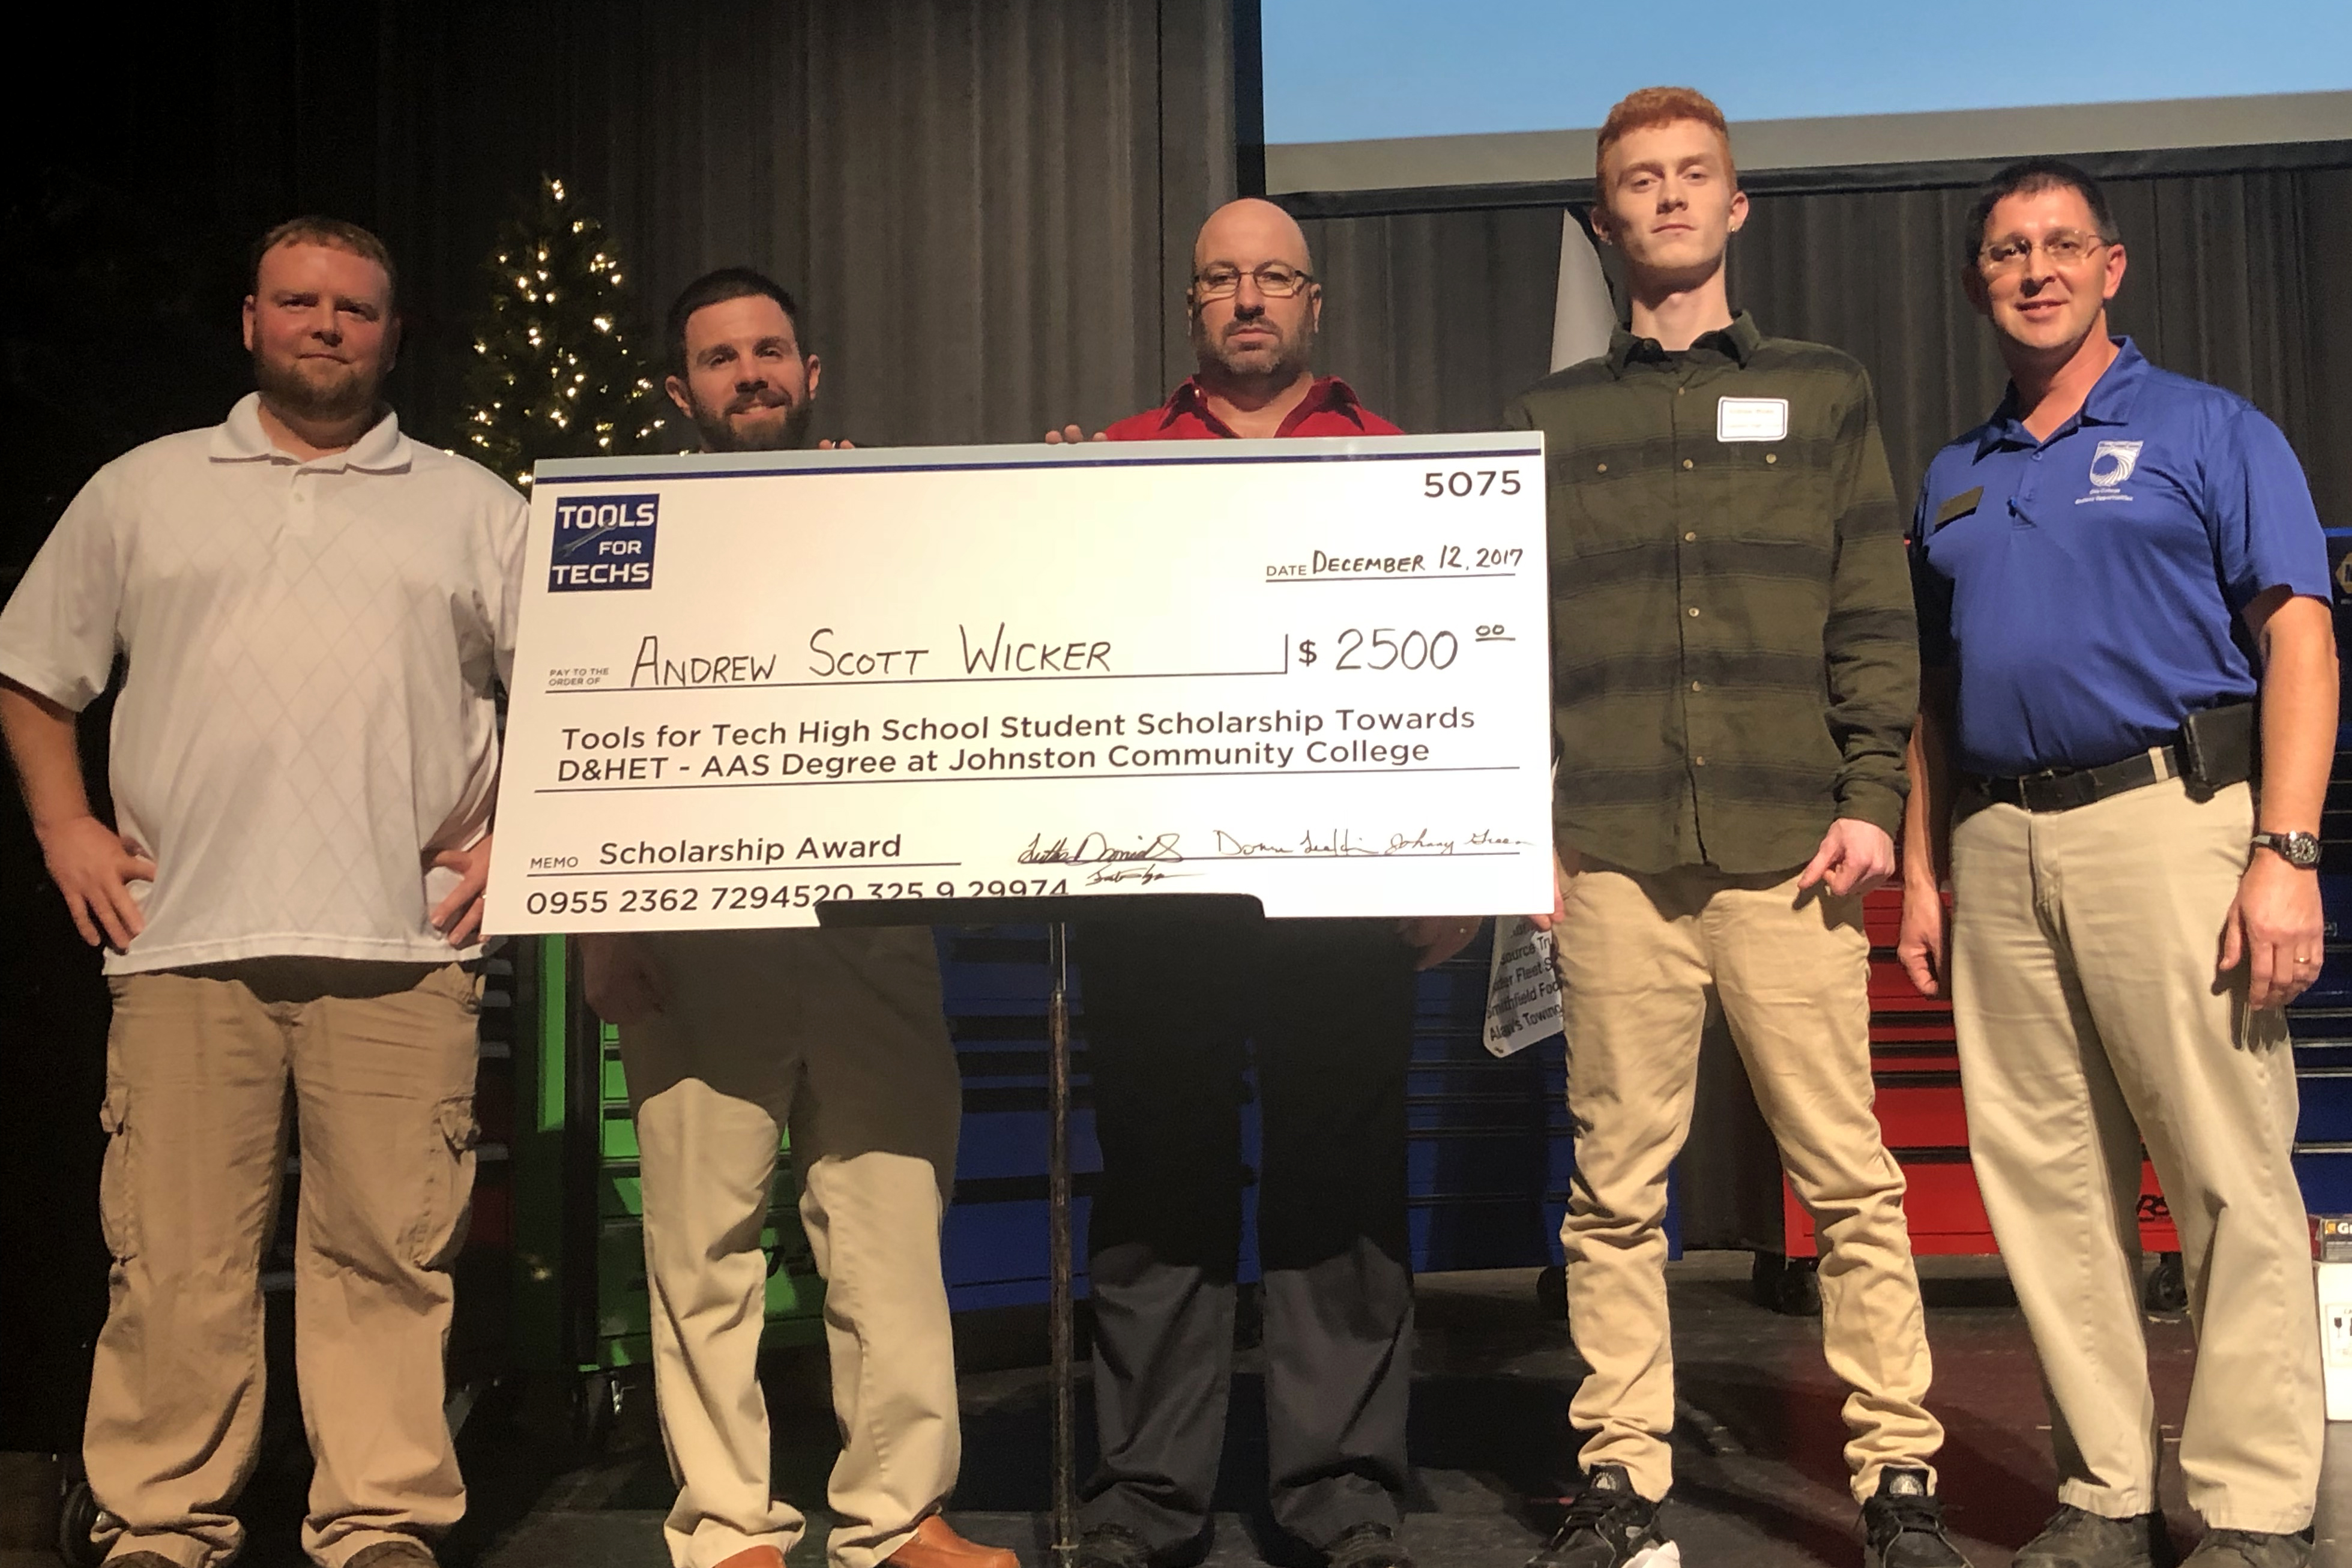 A Cleveland High student and current JCC student also received scholarships to study diesel mechanics.